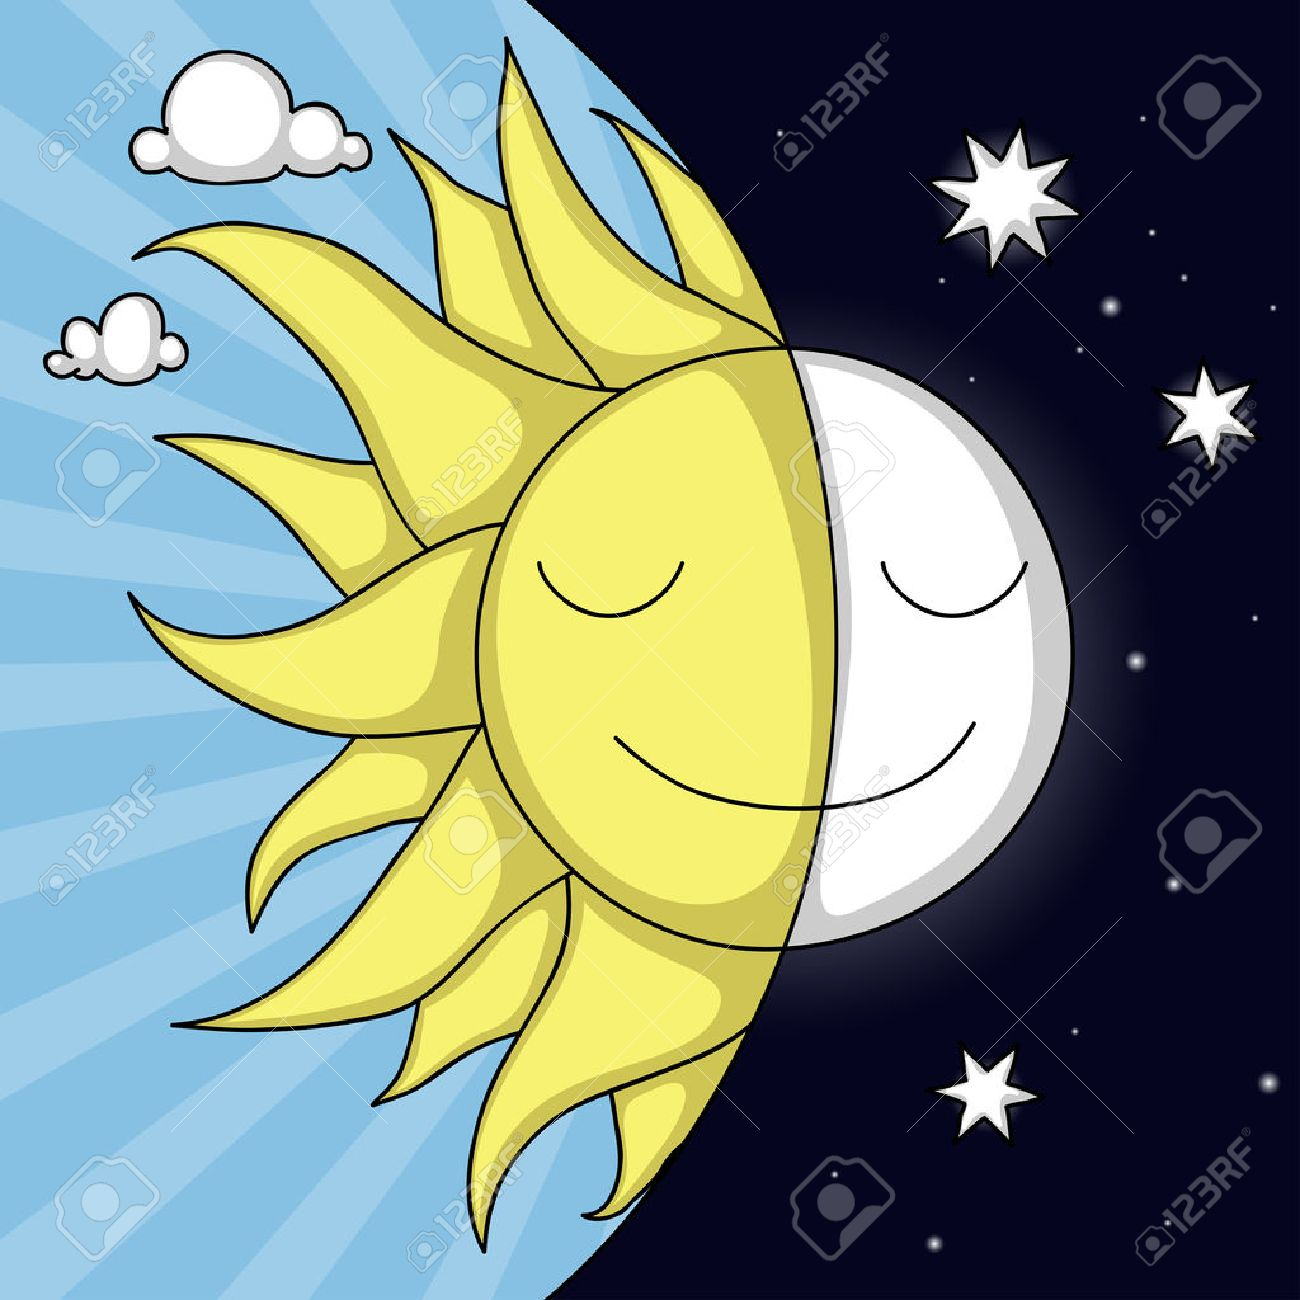 Cute Day And Night Illustration With Smiling Sun Moon Stock Vector